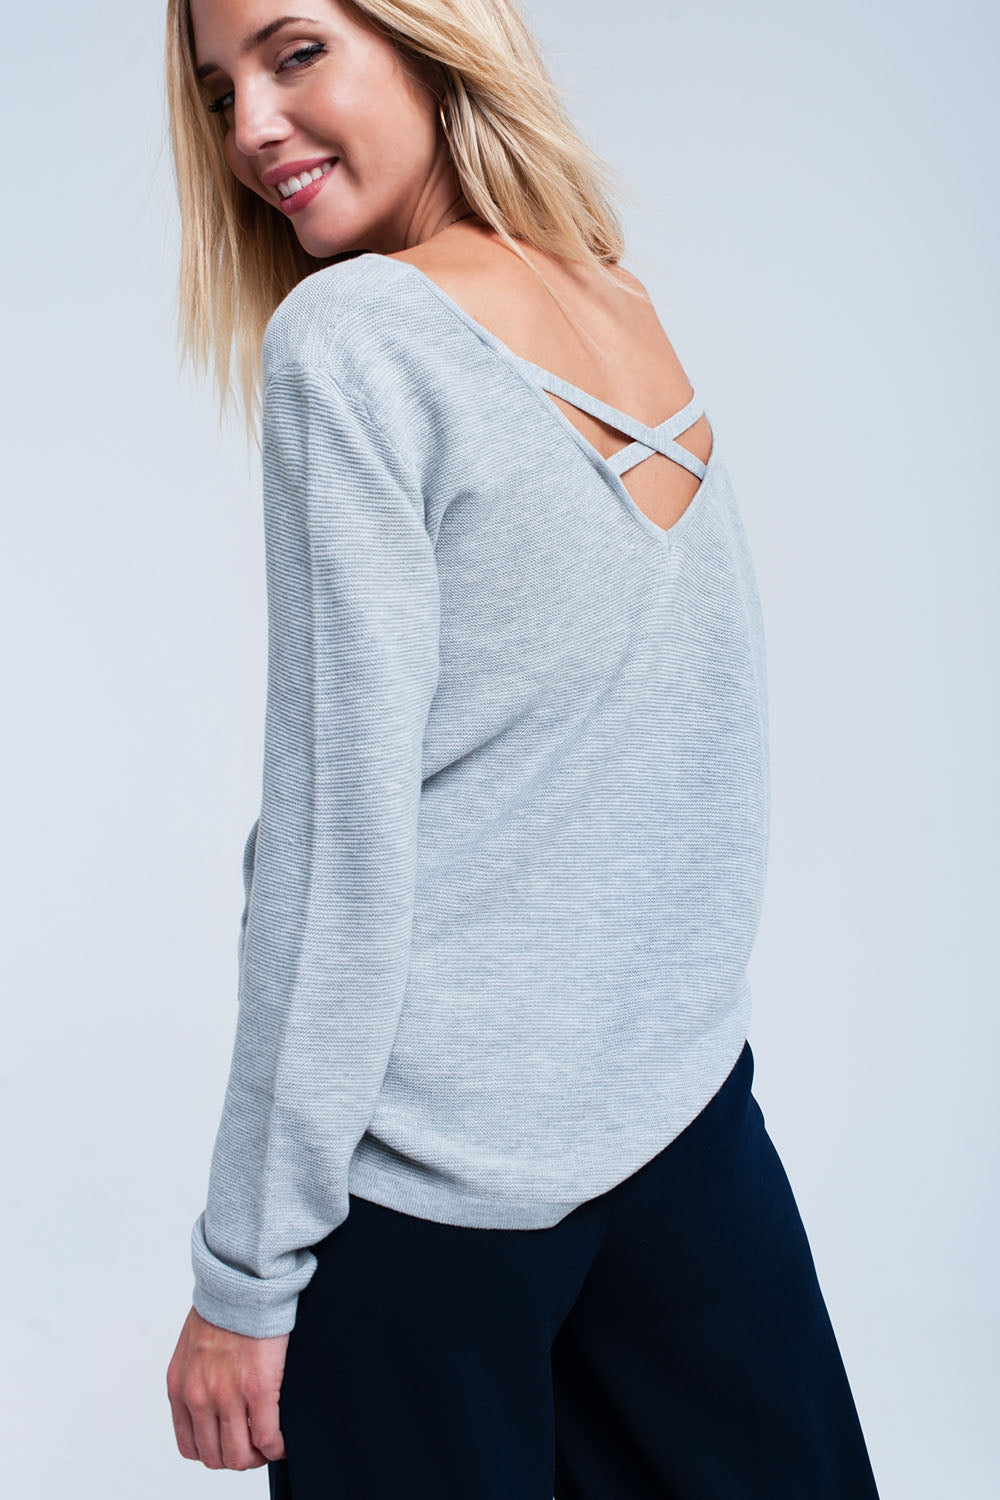 Light Gray Ribbed Sweater-Women - Apparel - Sweaters - Pull Over-Product Details Gray ribbed sweater with a V neck and cross back detail to the neck. It has long sleeves and side slits to the hem. Soft woven.-Keyomi-Sook